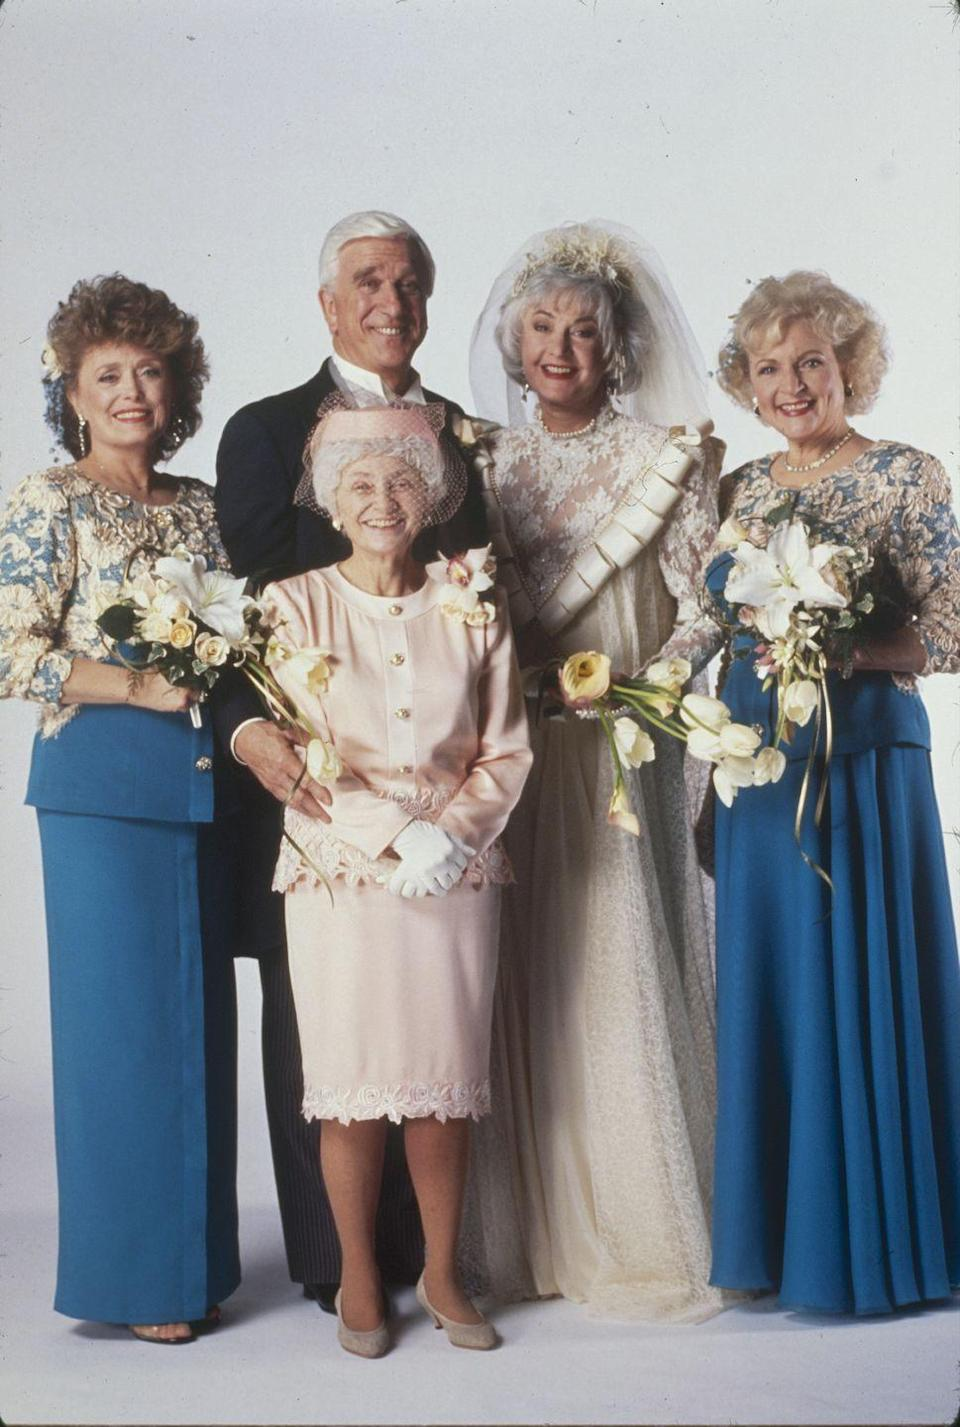 """<p>In 1992, <em>The Golden Girls</em> ended when<a href=""""https://www.countryliving.com/life/entertainment/a44957/betty-white-and-bea-arthur-feud/"""" rel=""""nofollow noopener"""" target=""""_blank"""" data-ylk=""""slk:Arthur announced"""" class=""""link rapid-noclick-resp""""> Arthur announced</a> that she wanted to leave the show. White, McClanahan, and Getty did a spin-off called <em>The Golden Palace</em>, but that only lasted one season. </p>"""